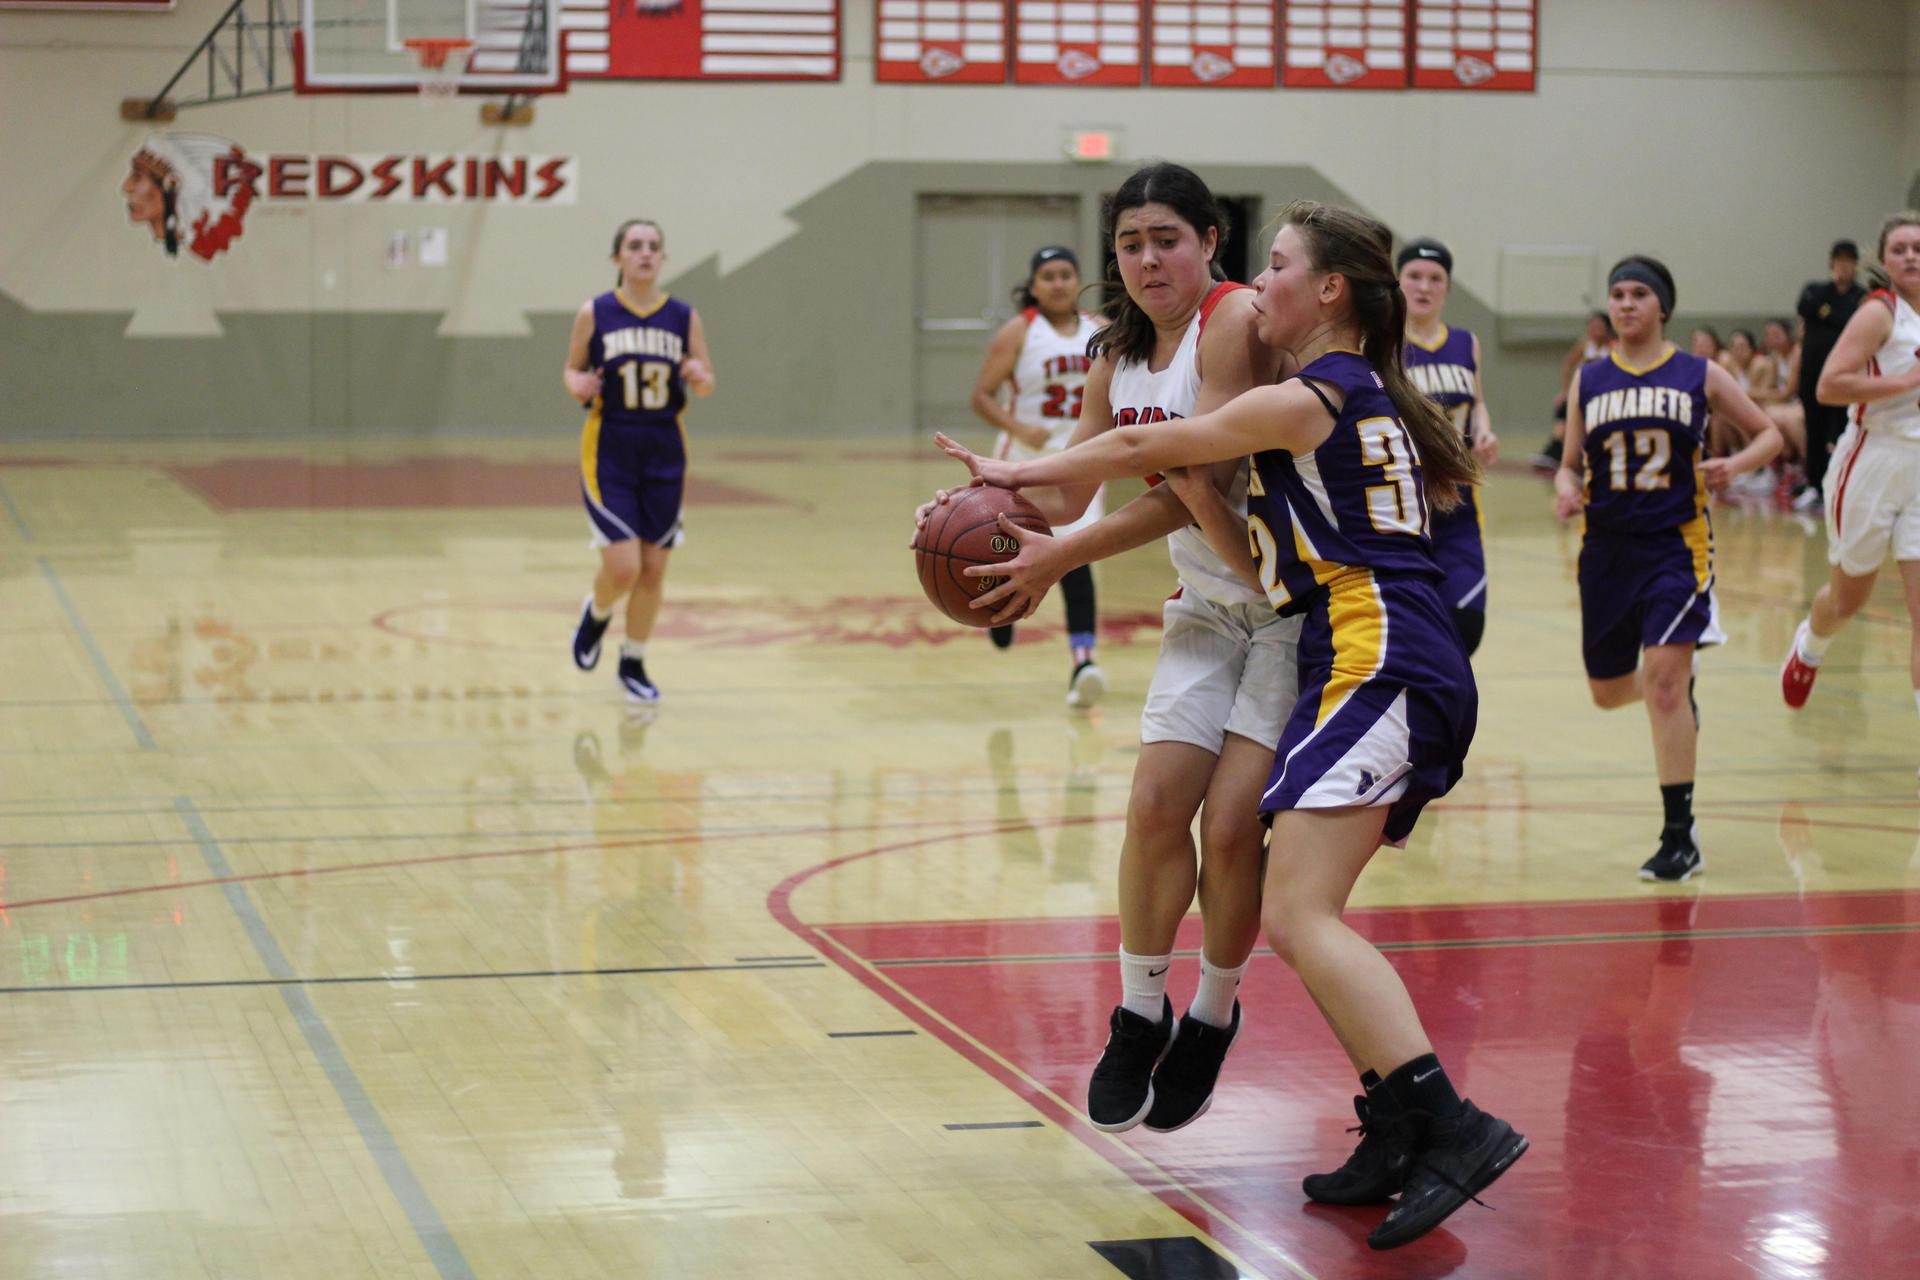 Sydni Ringeisen dribbling the ball